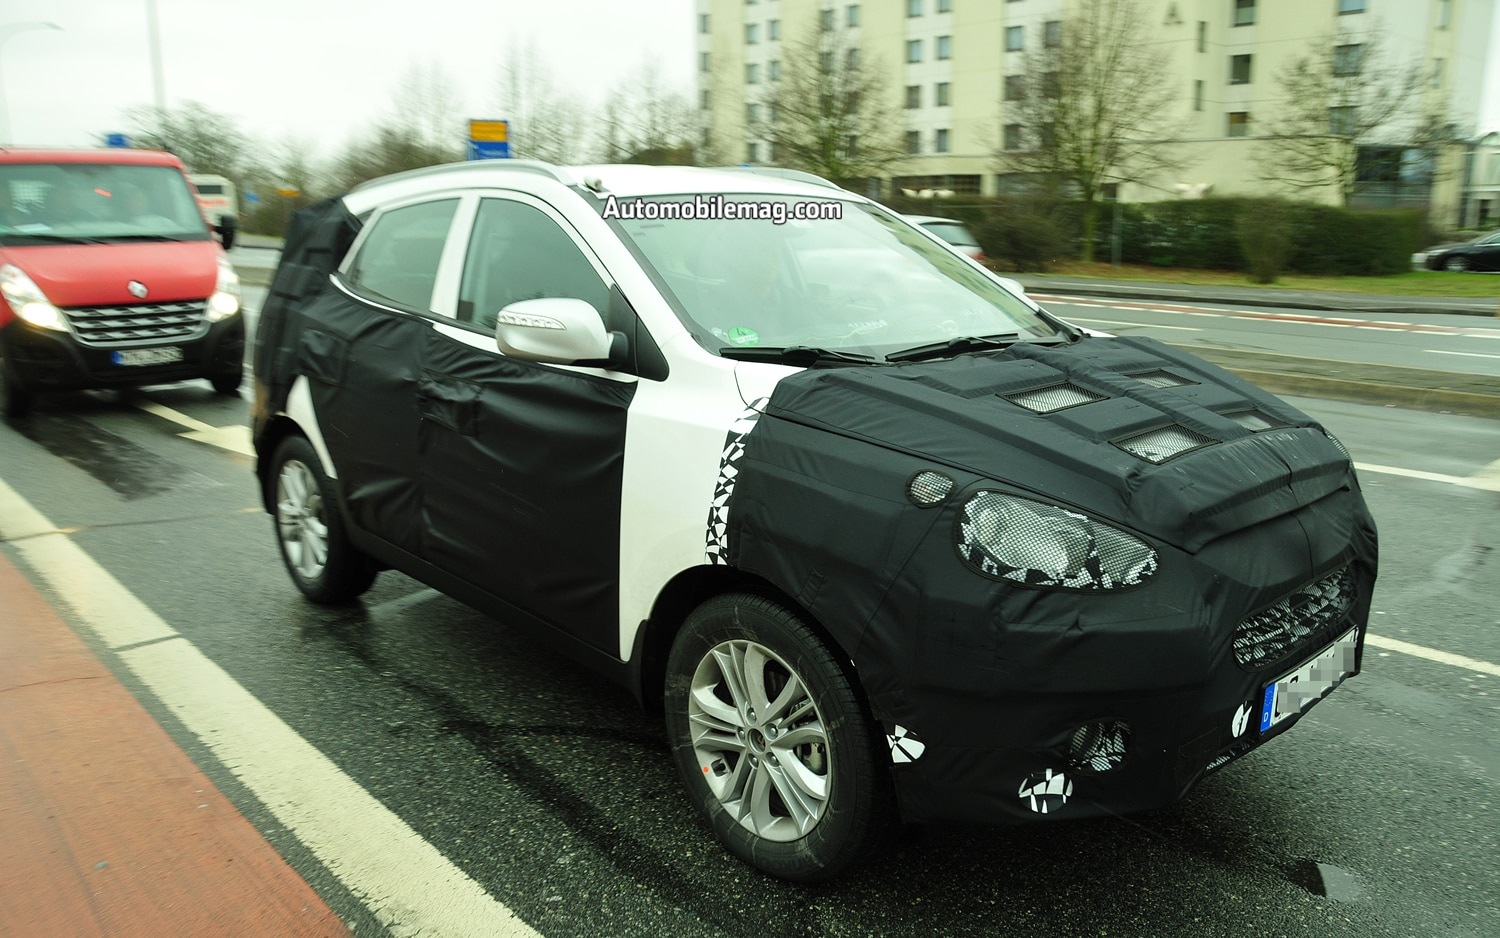 Refreshed Hyundai Tucson Prototype Right Three Quarter View1